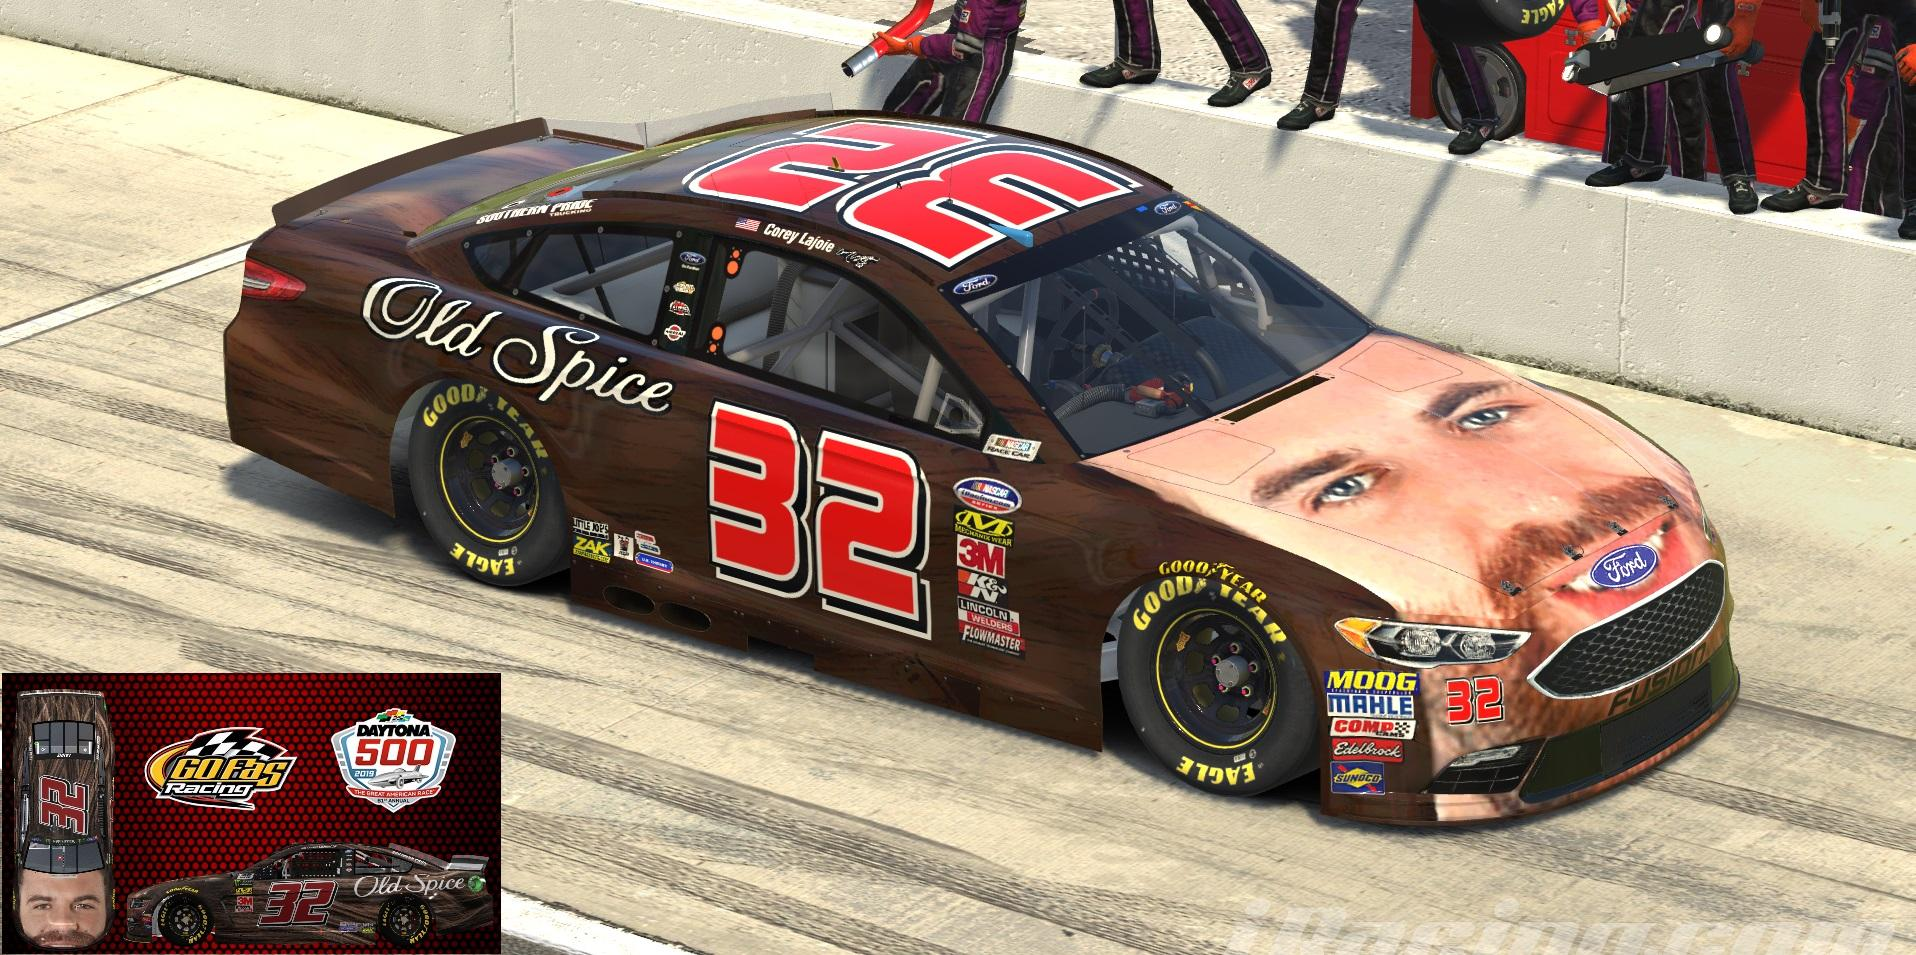 Preview of 2019 #32 Corey Lajoie - Lajoies Face/Old Spice (Daytona 500) by Shawn Howell